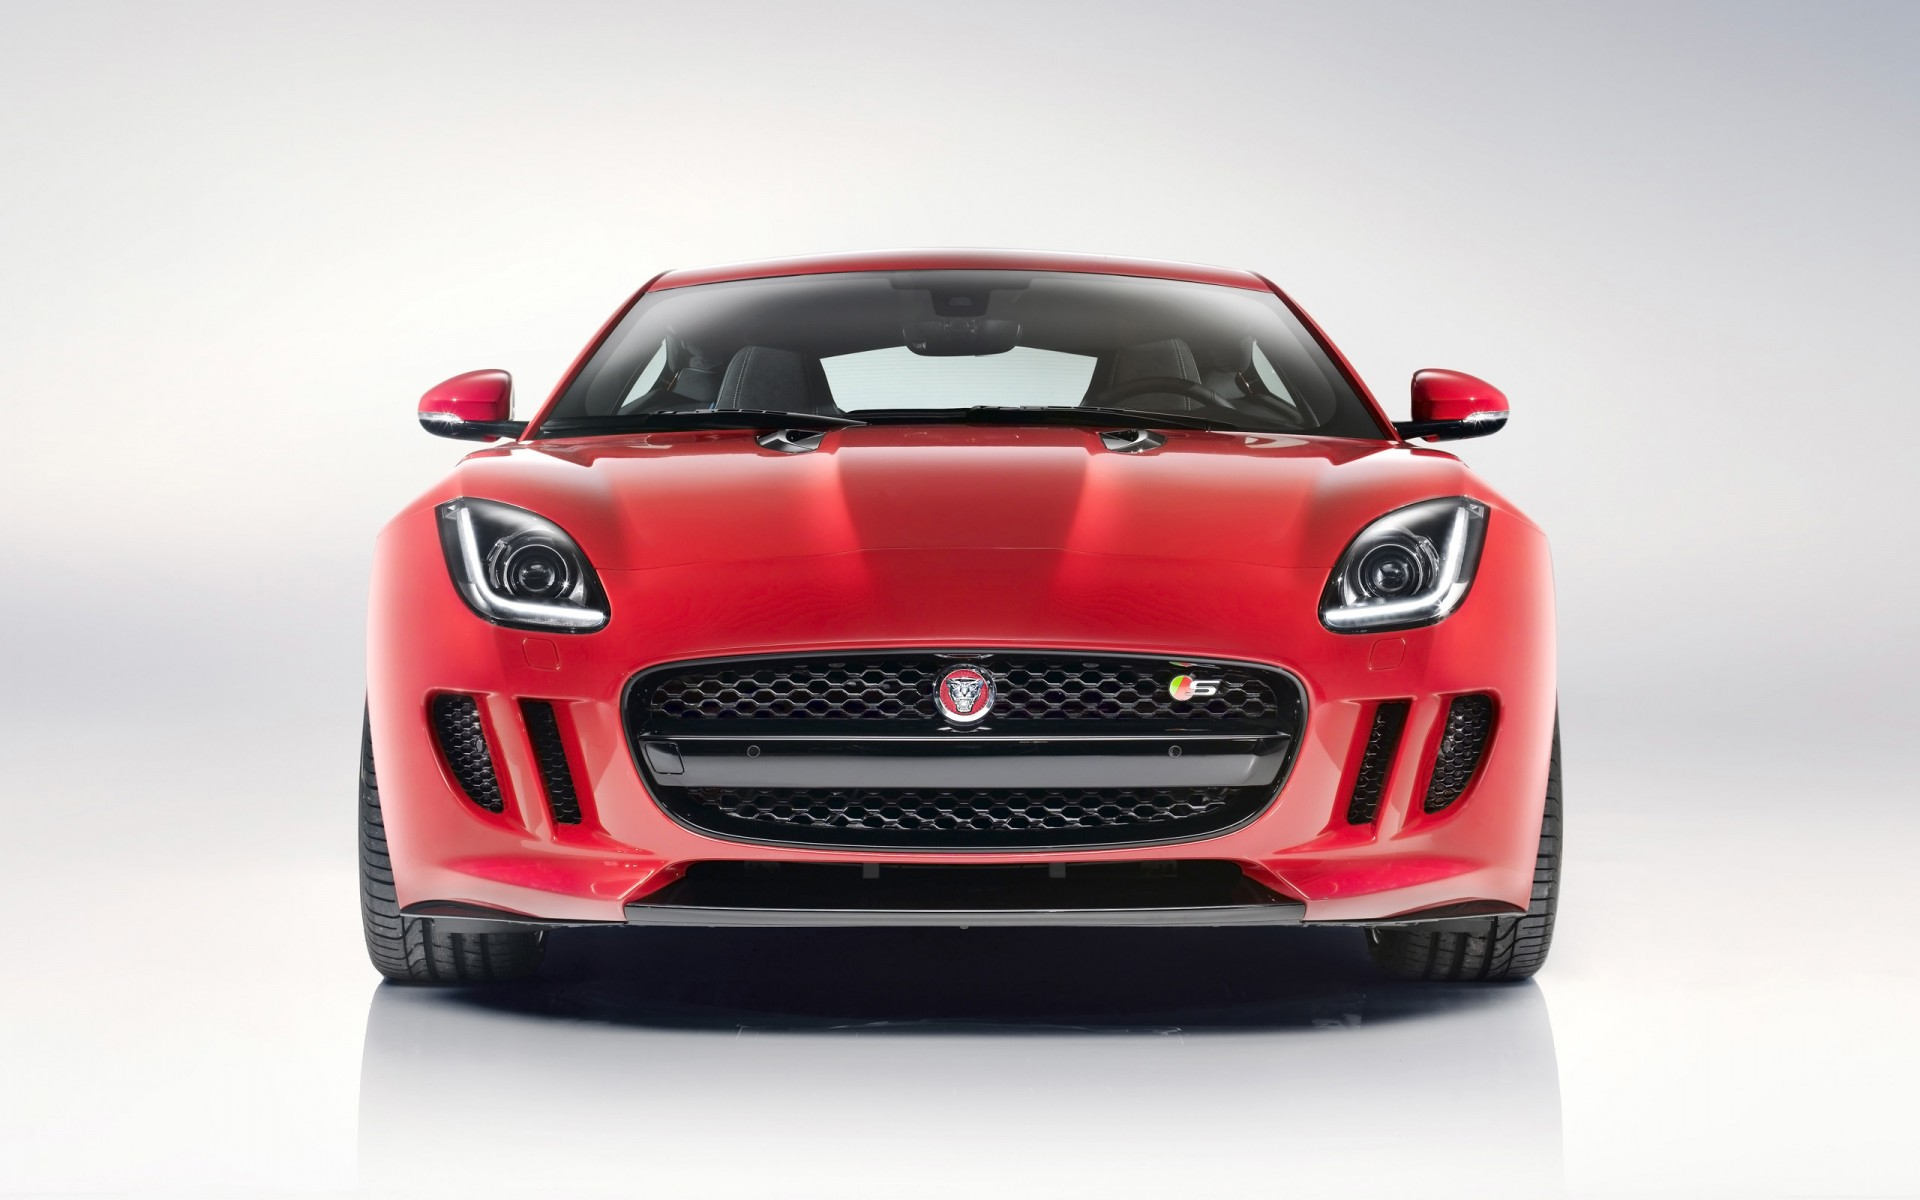 2014 jaguar f type r coupe 6 wallpaper hd car wallpapers. Black Bedroom Furniture Sets. Home Design Ideas